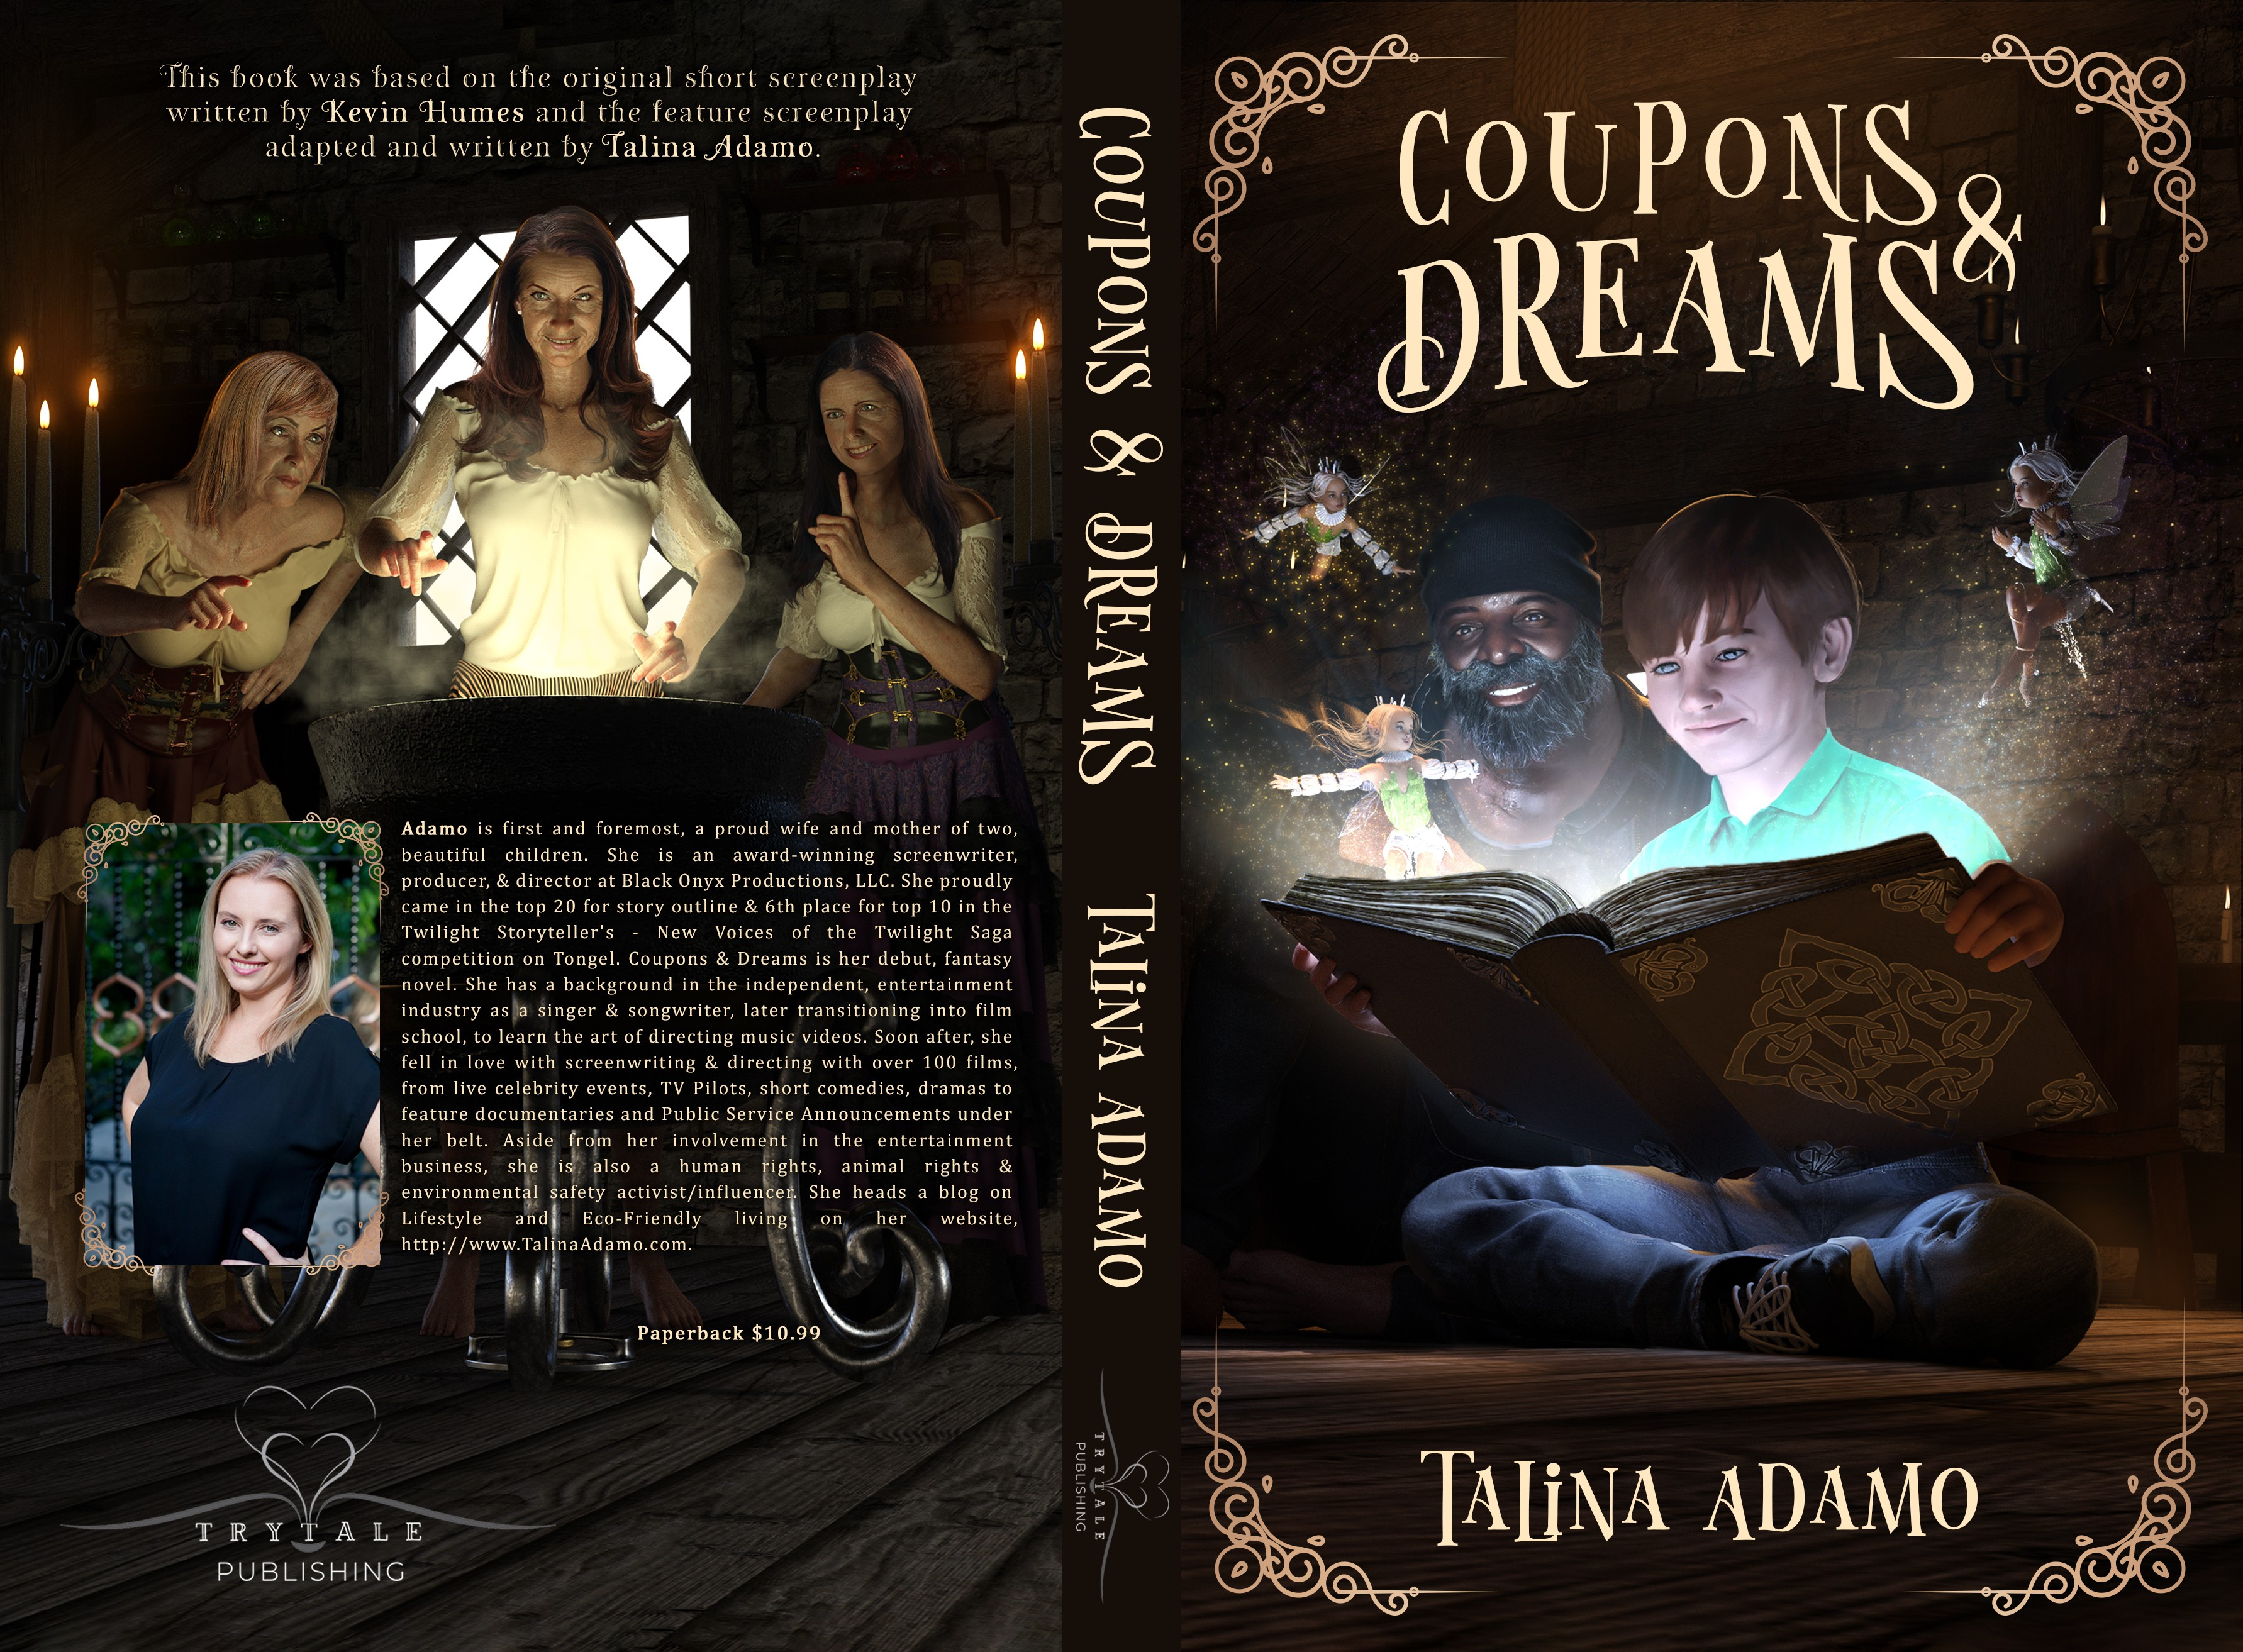 Coupons & Dreams Fantasy Novel needs an Illustrated or Stock Image, Powerful Book Cover